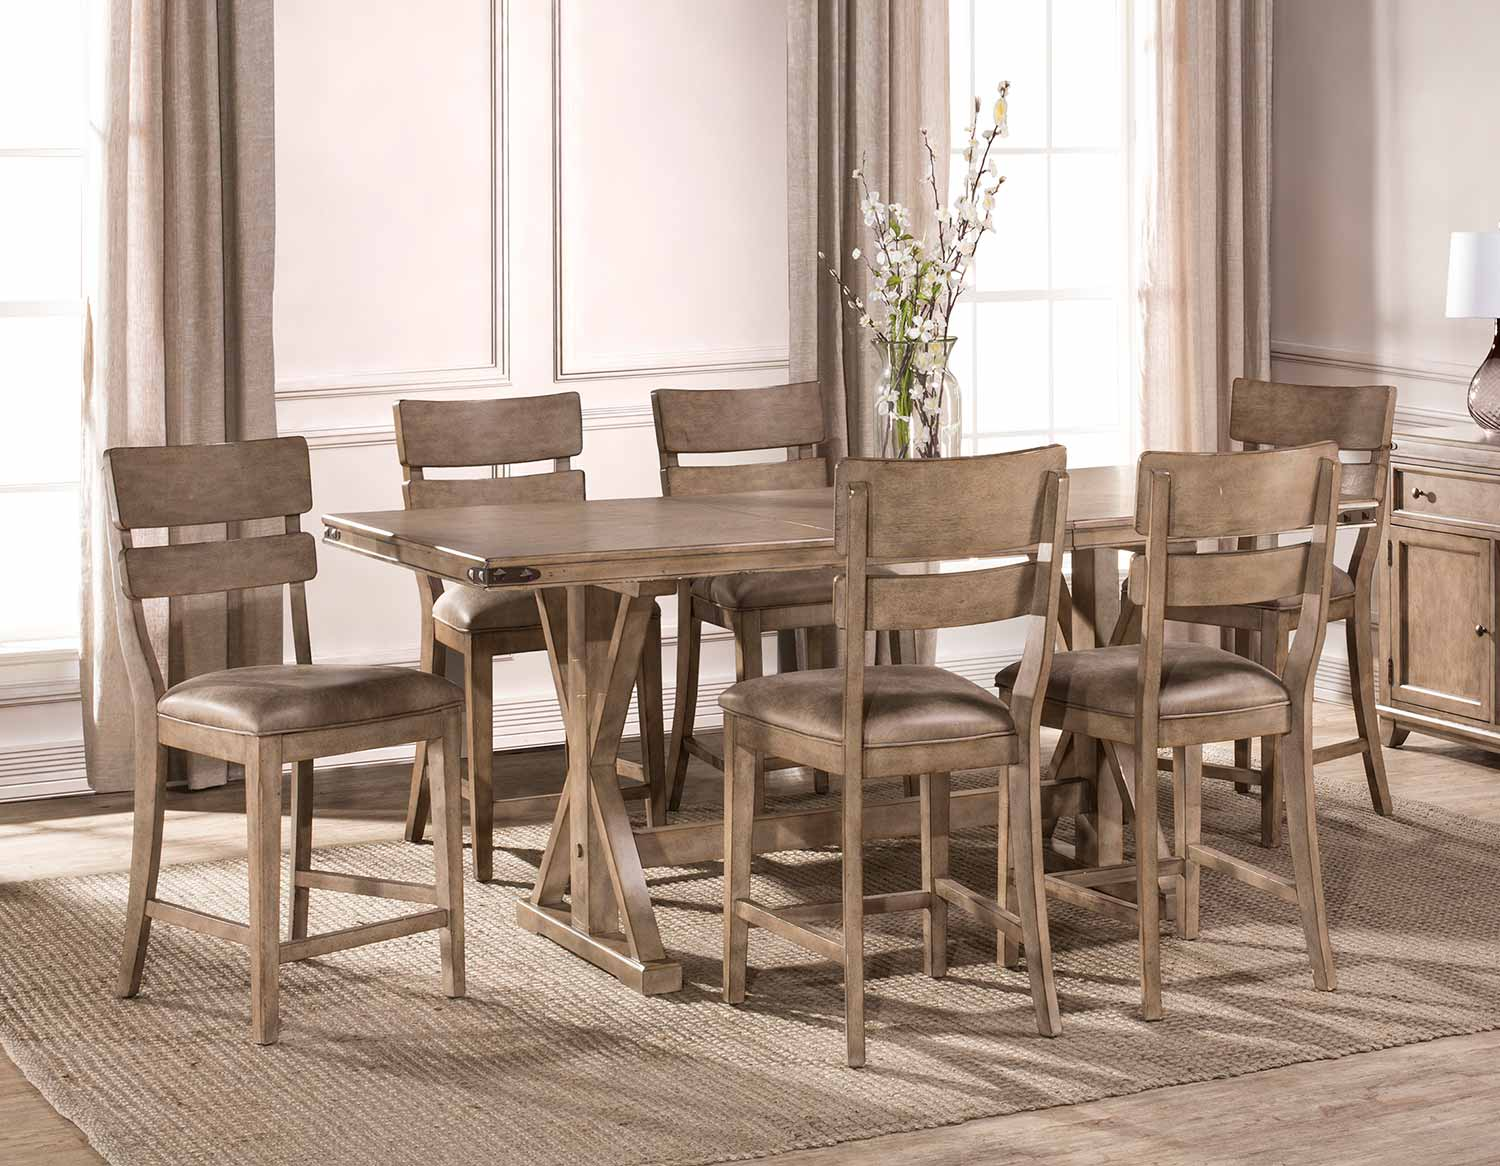 Hillsdale Leclair 7 Piece Counter Height Dining Set   Vintage Grey